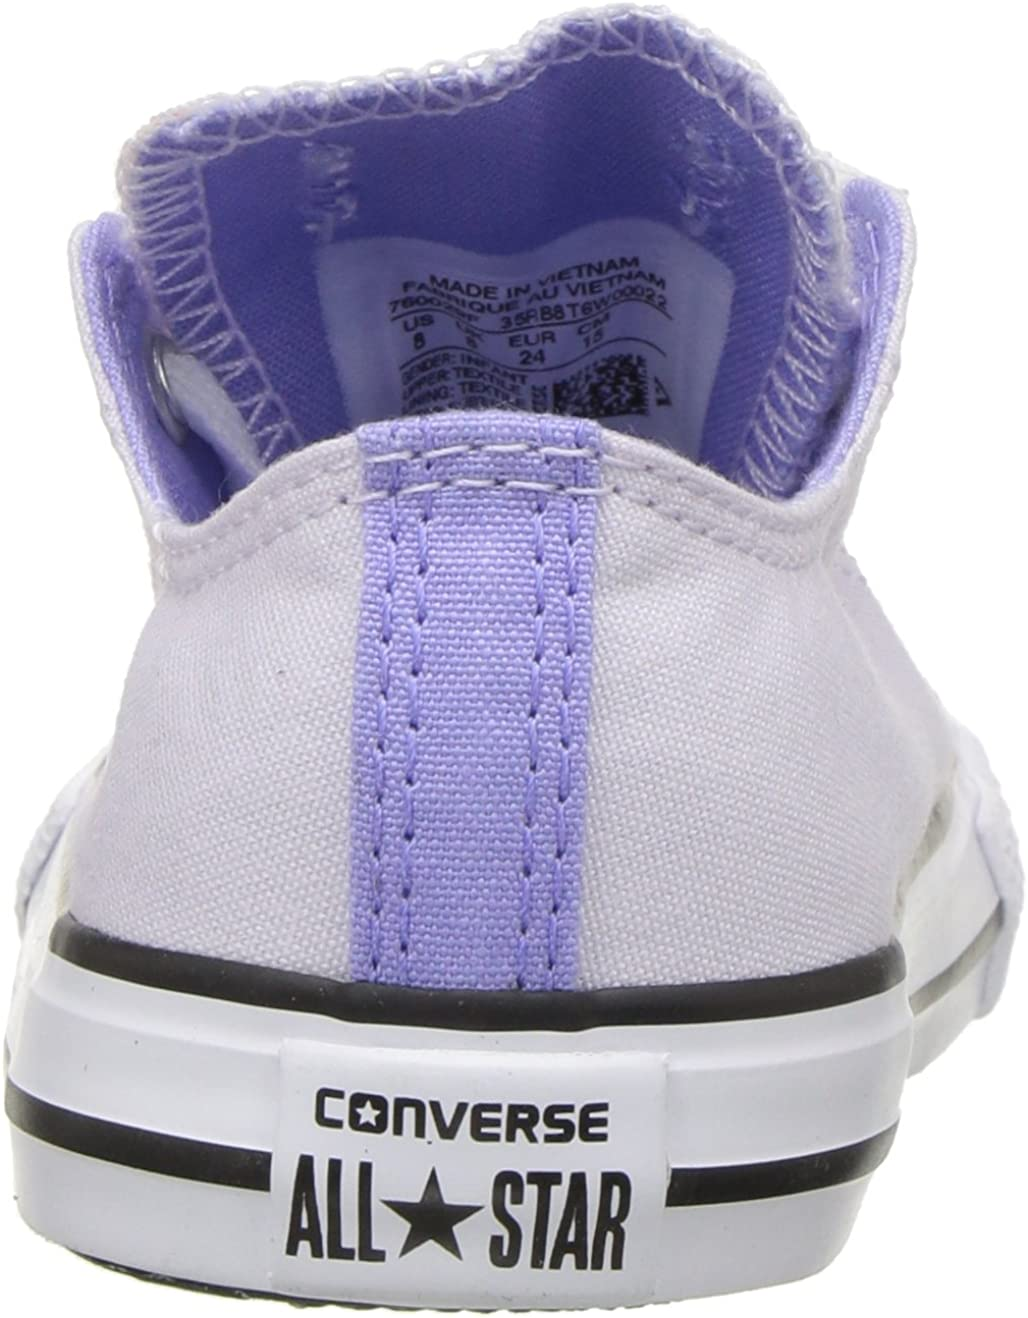 Converse Girls' Double Tongue Palm Trees